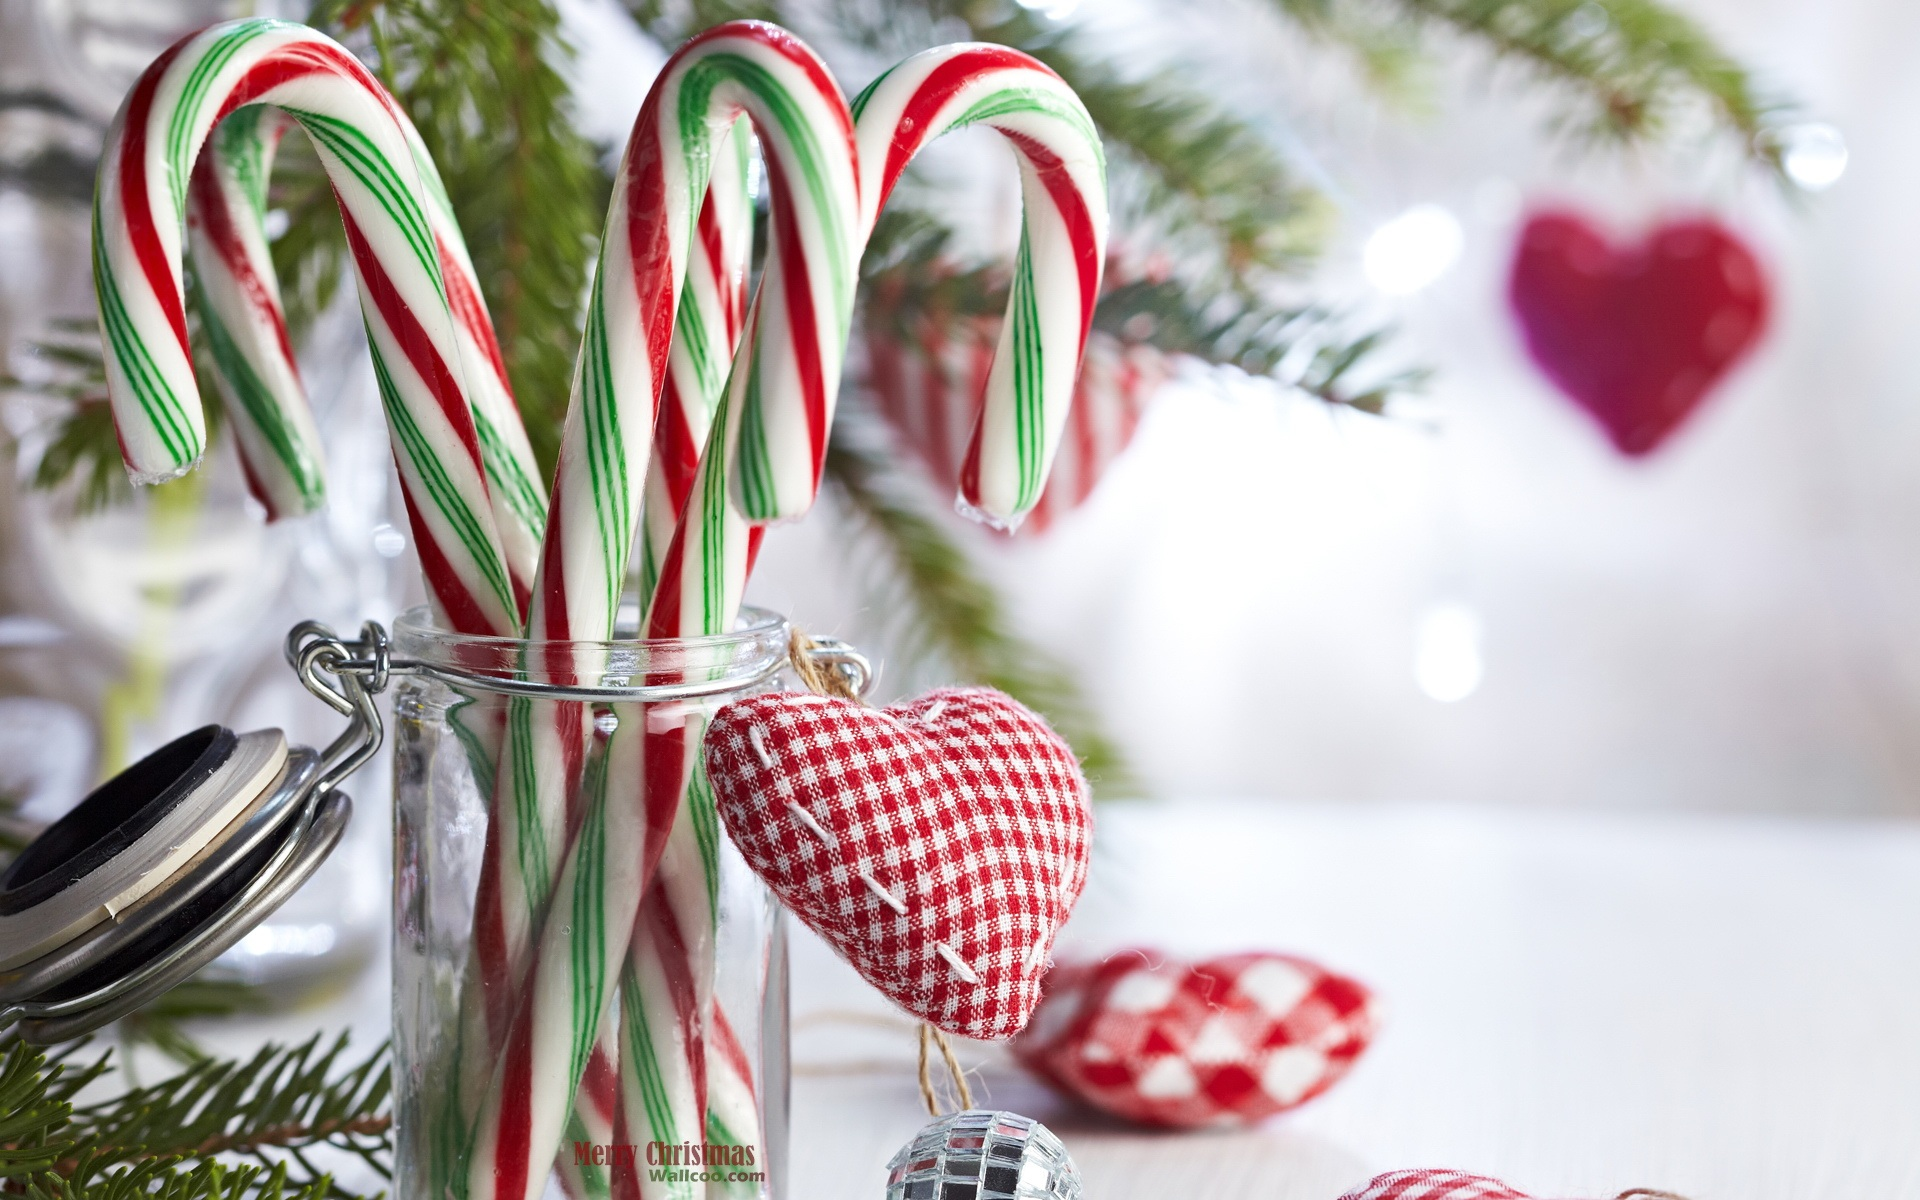 Christmas decoration theme wallpaper 51318